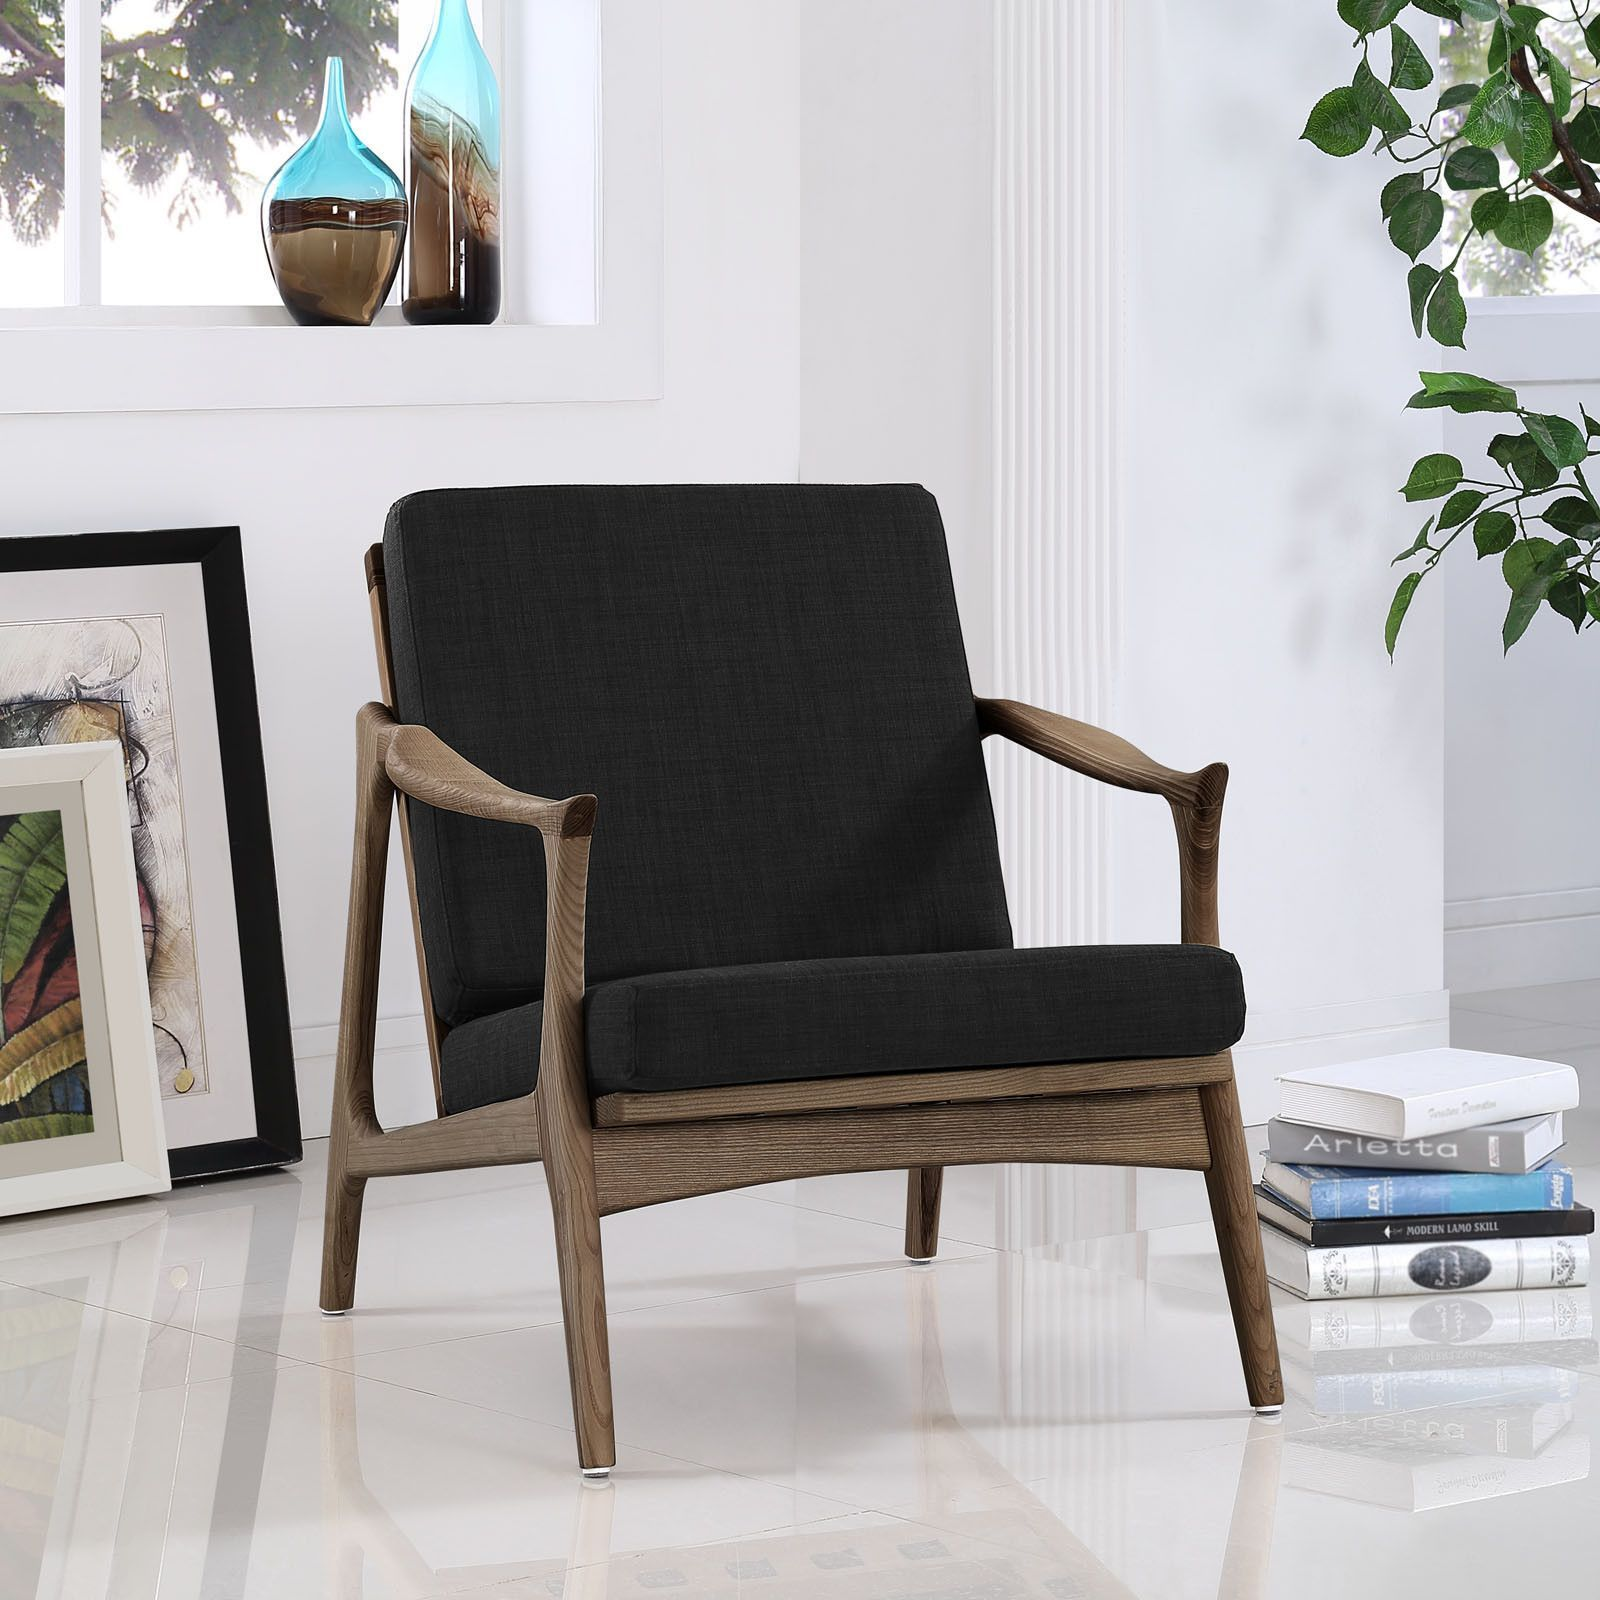 Best Mid Century Modern Style Arm Chair Upholstered Arm Chair 640 x 480